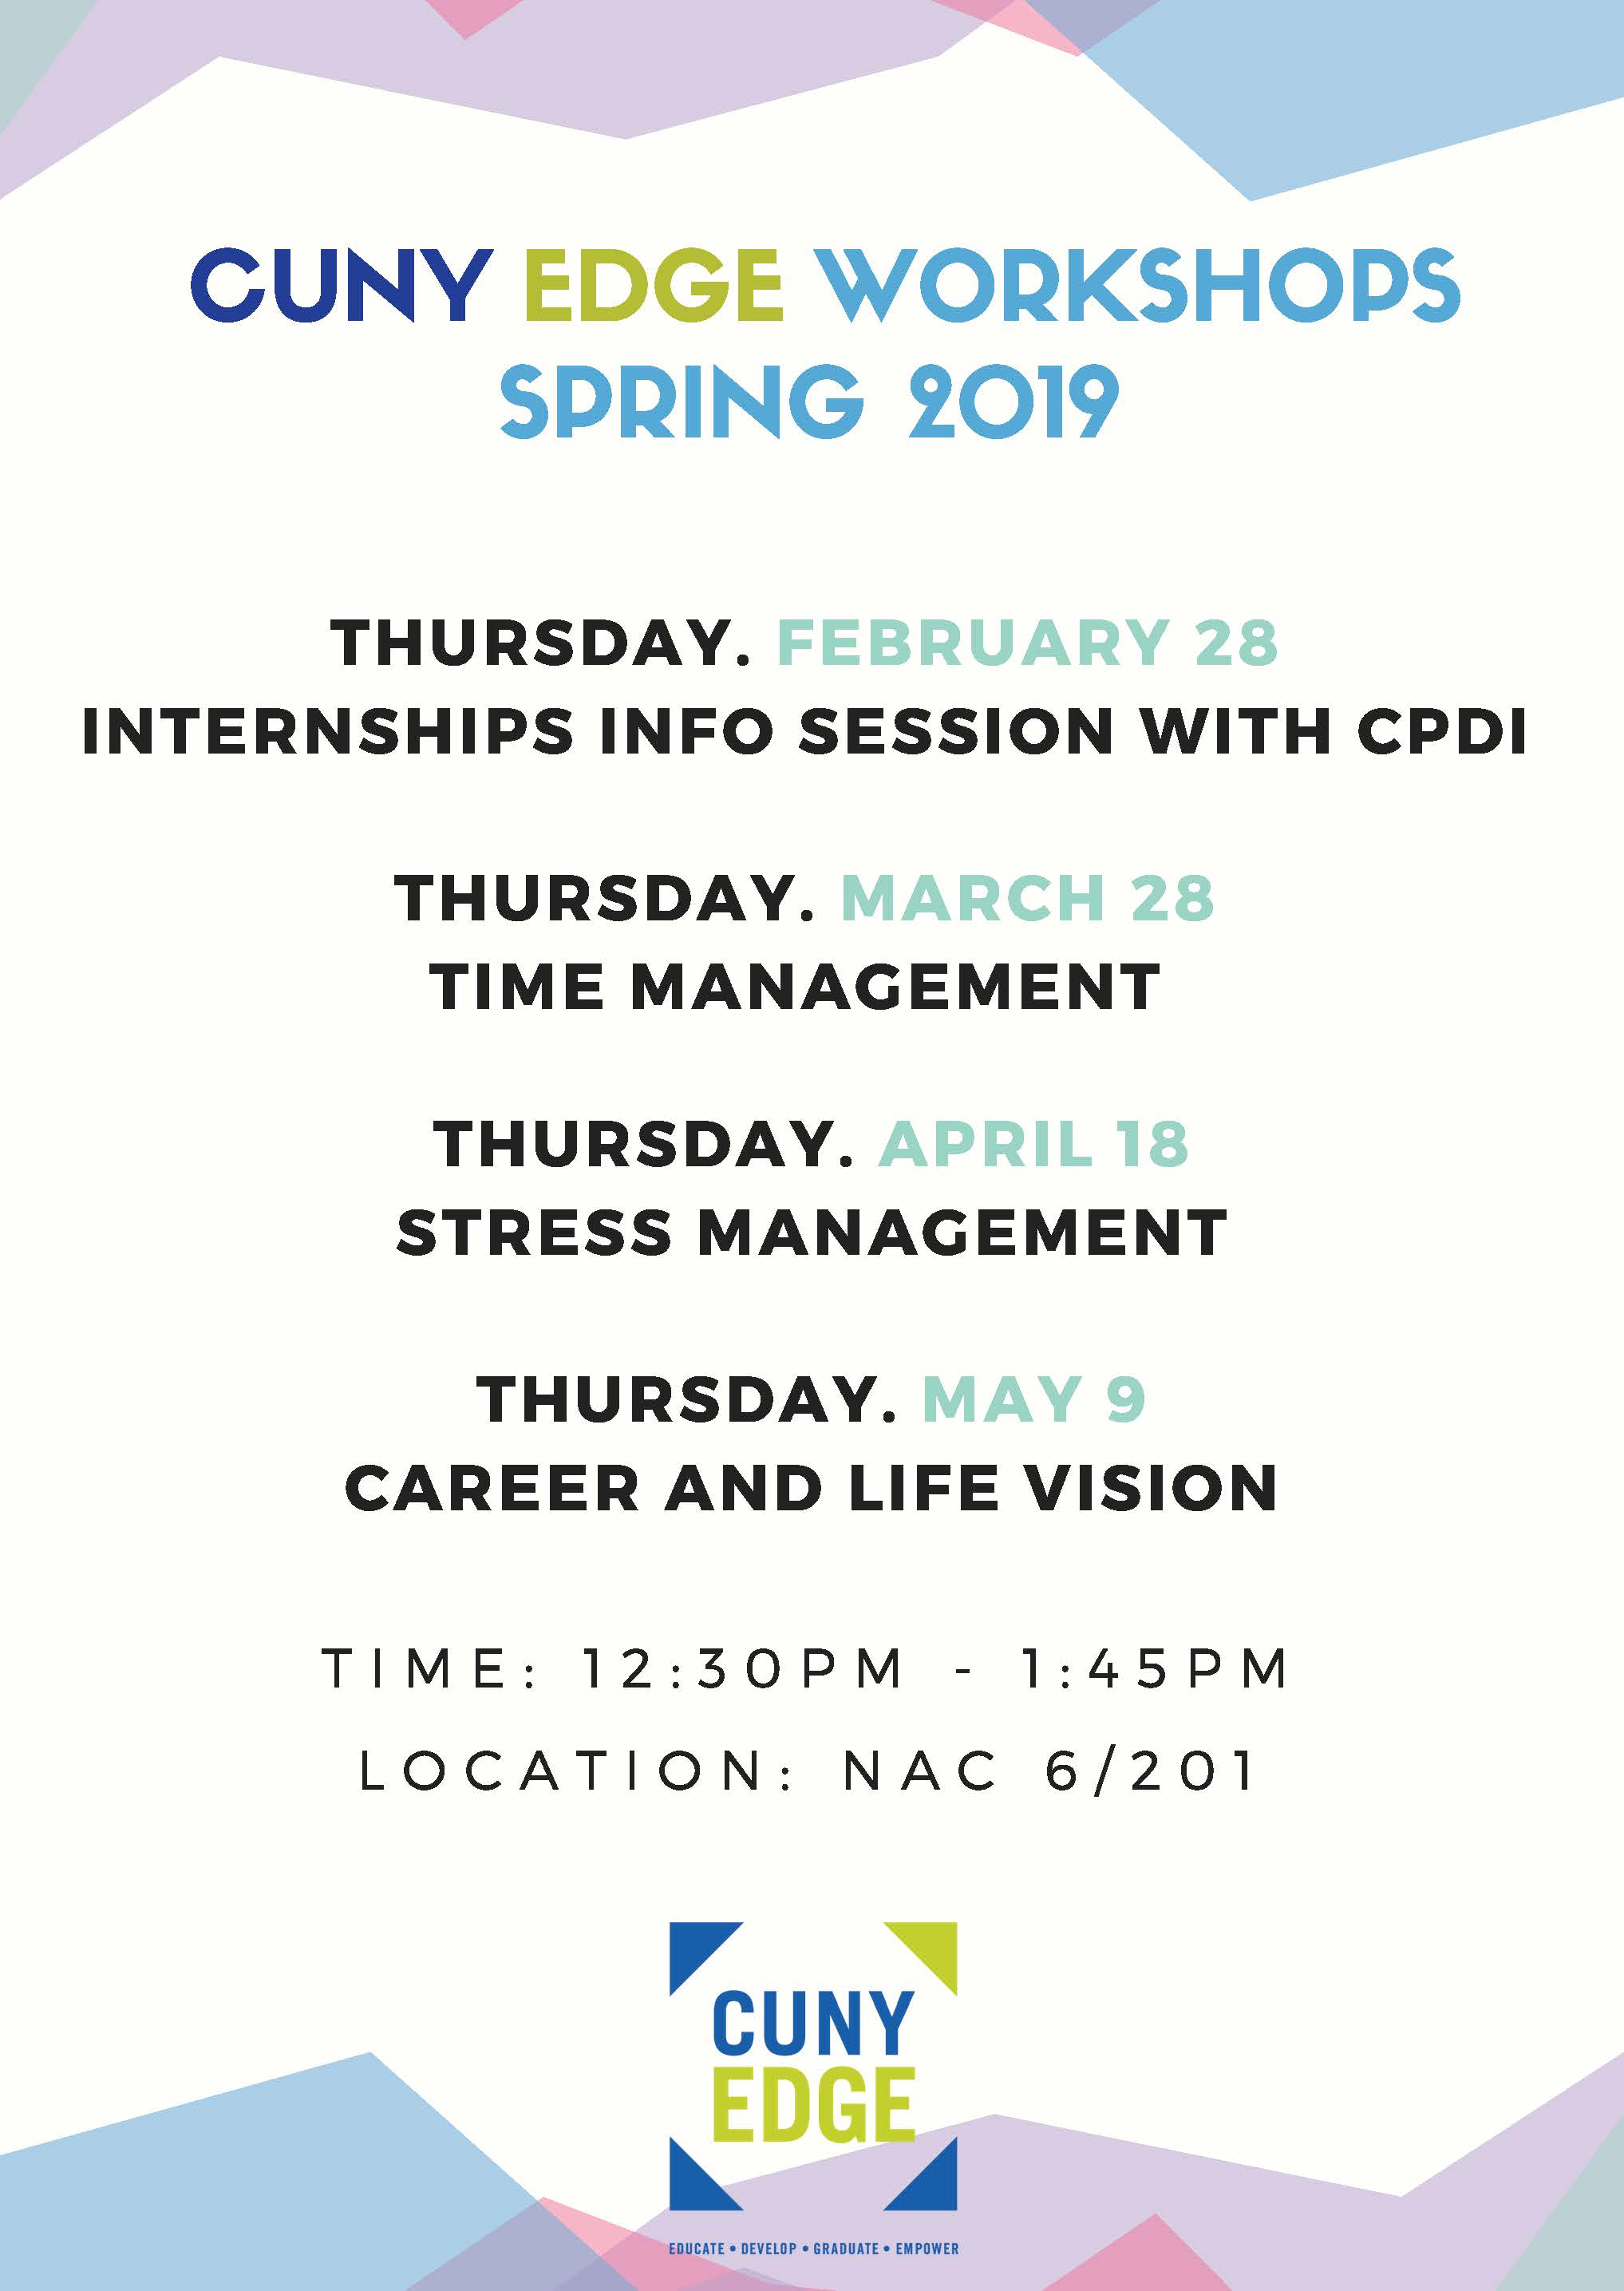 CUNY EDGE Spring 2019 Events